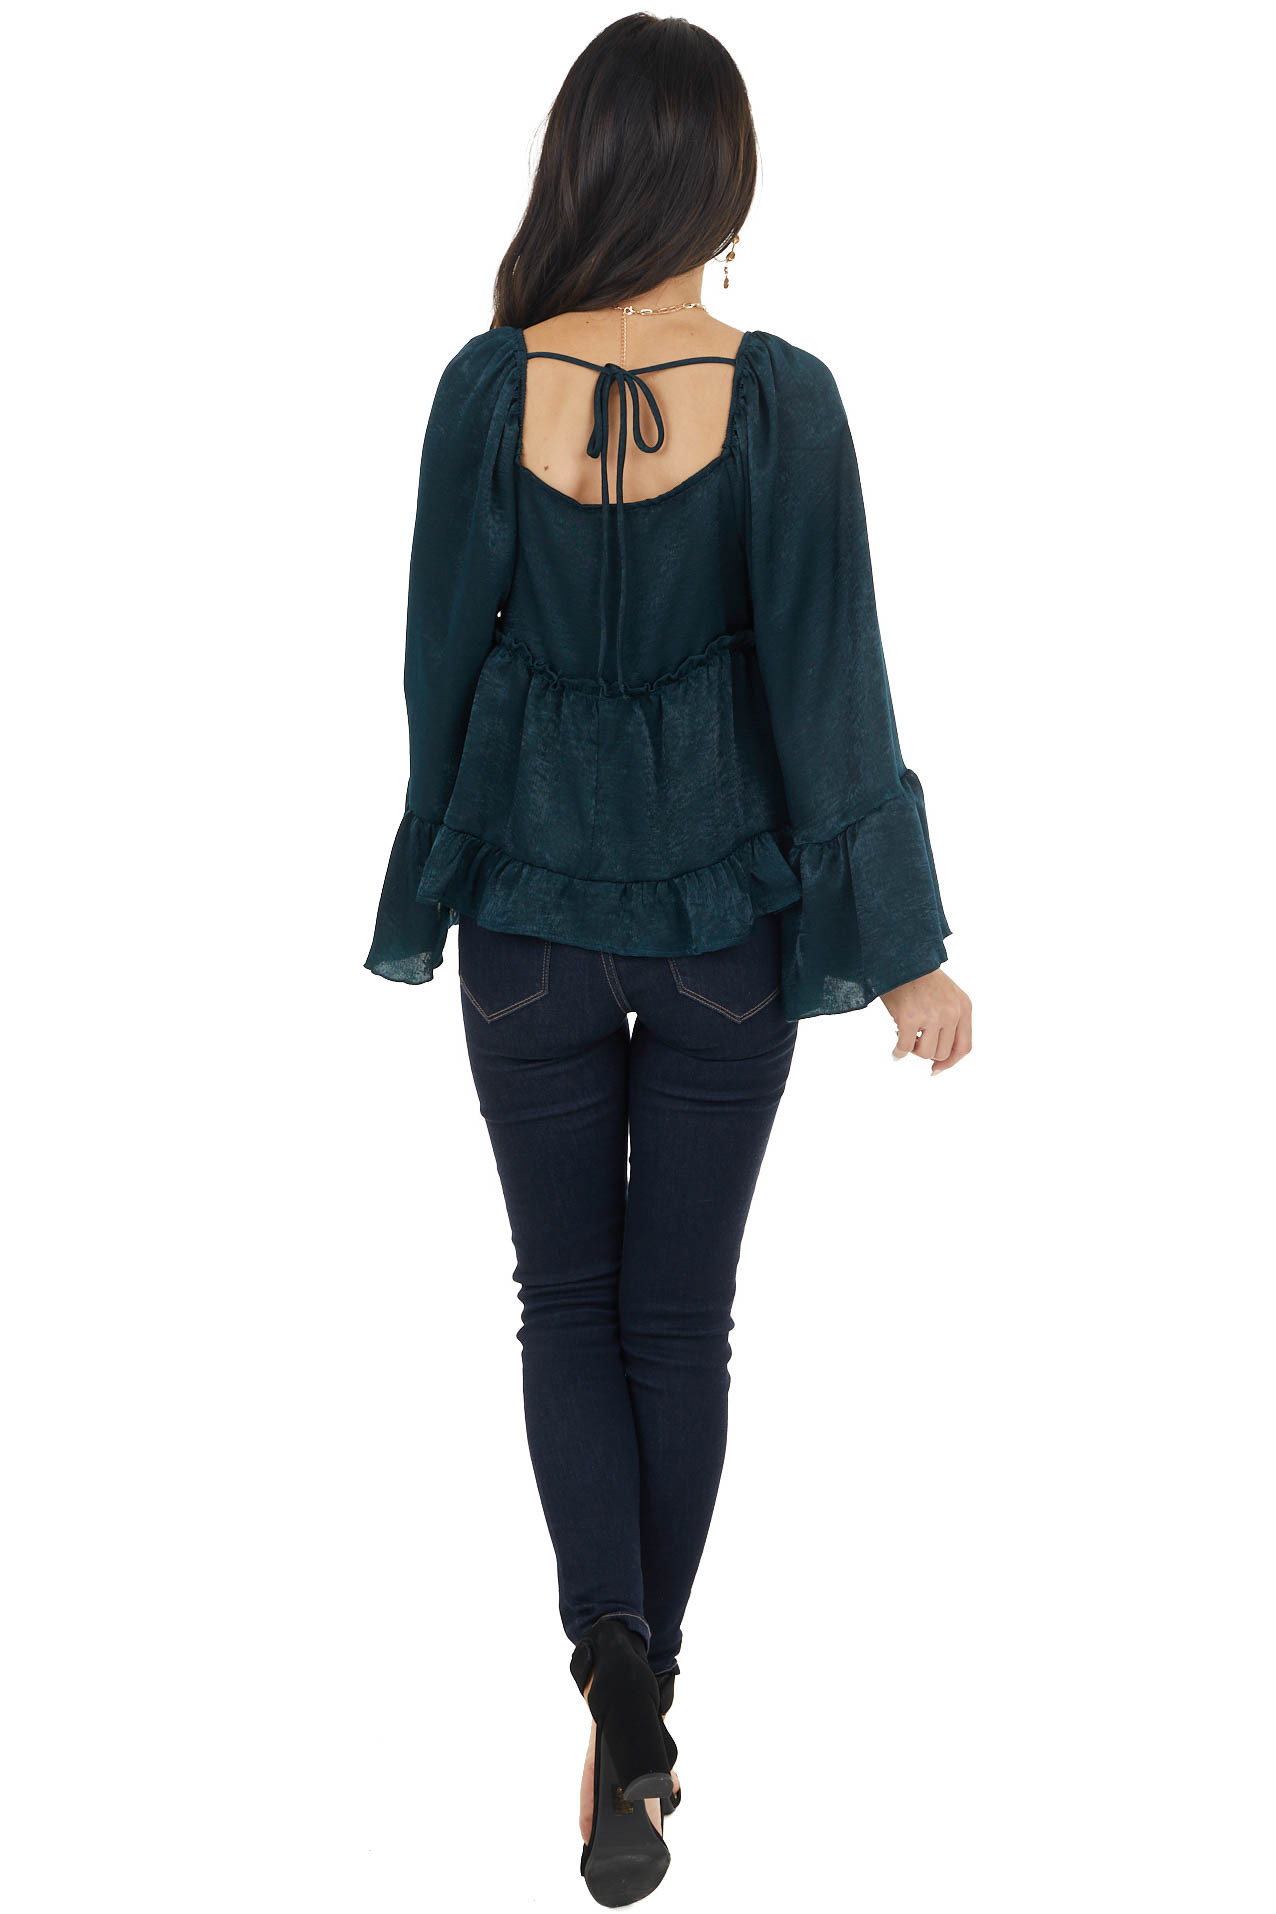 Dark Emerald Green Long Sleeve Top with Tiered Ruffle Detail